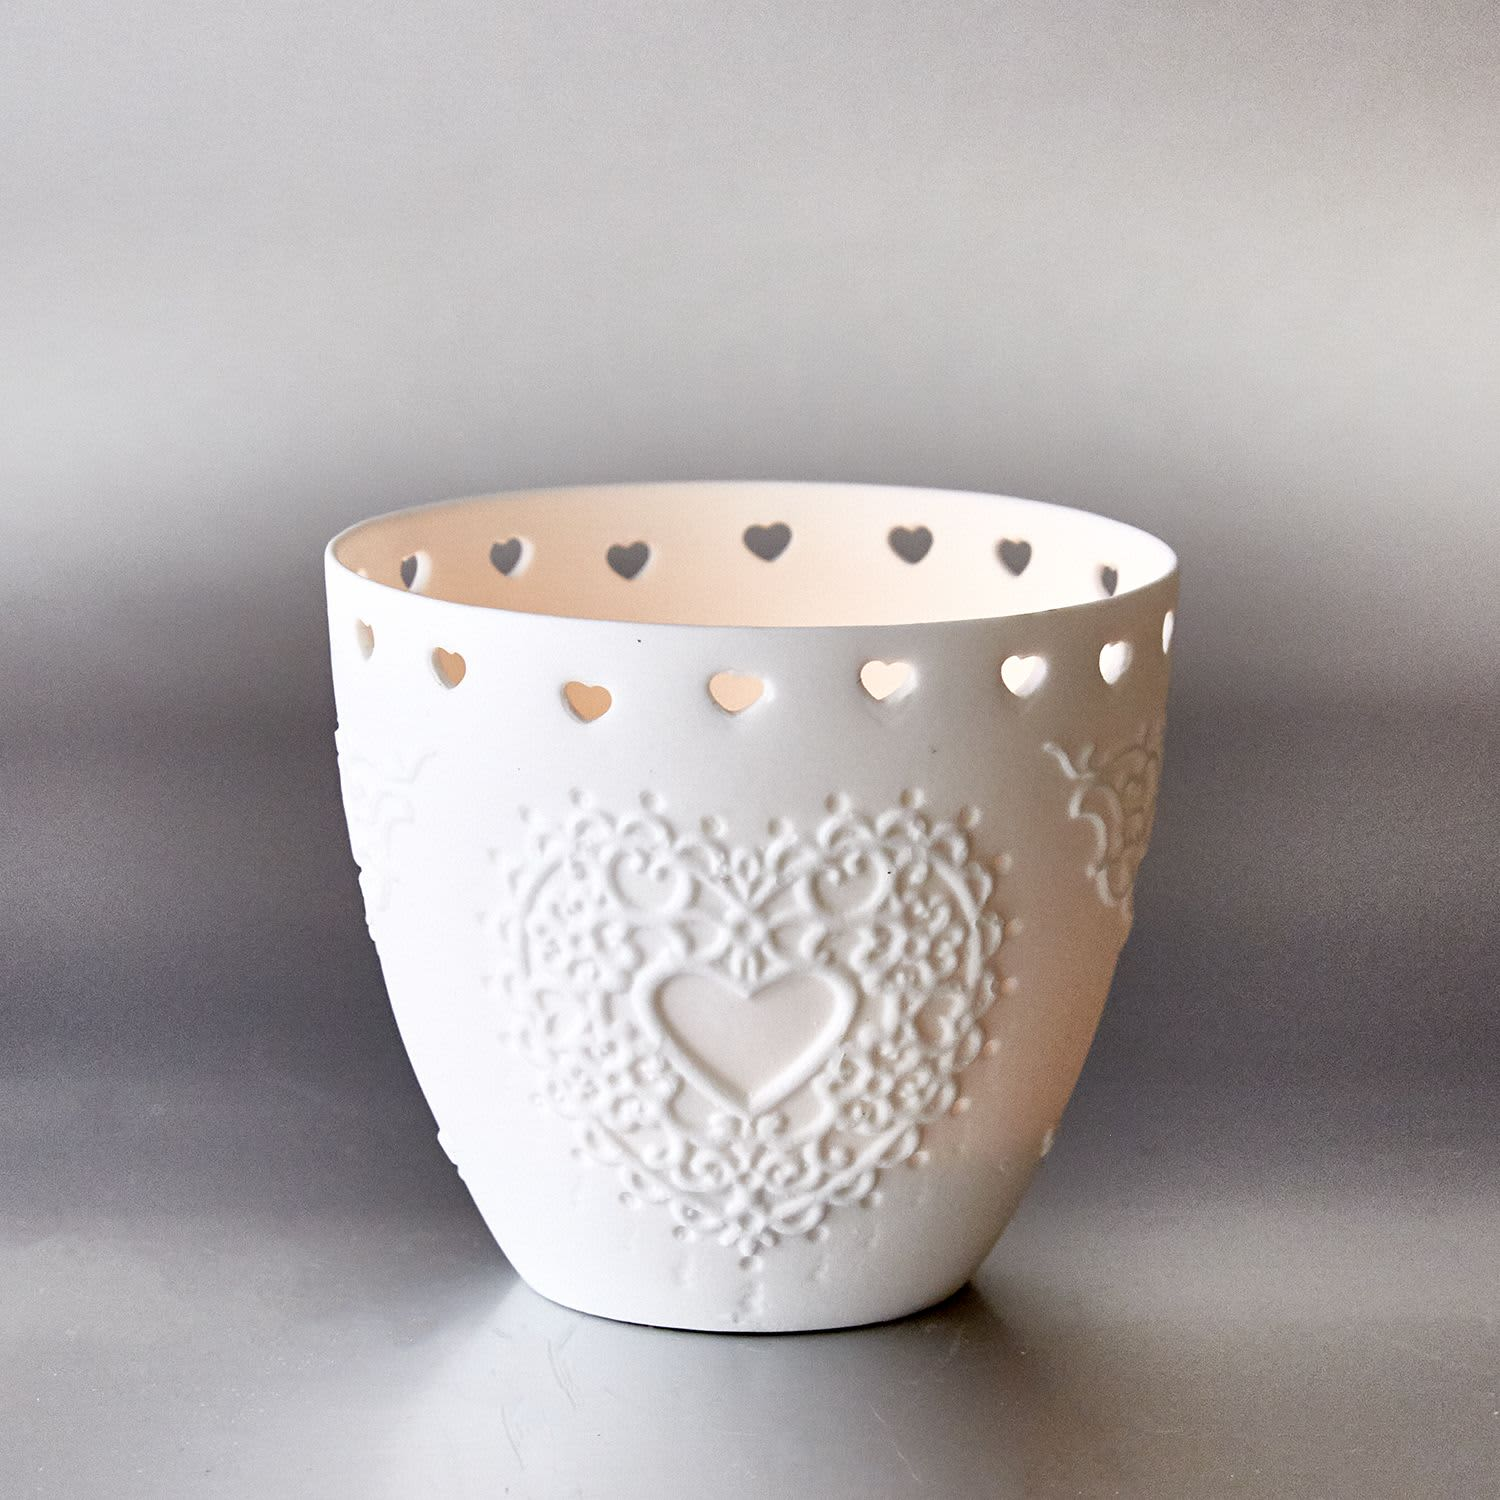 Light-Glow Heart Tea Light Candle Holder Cup